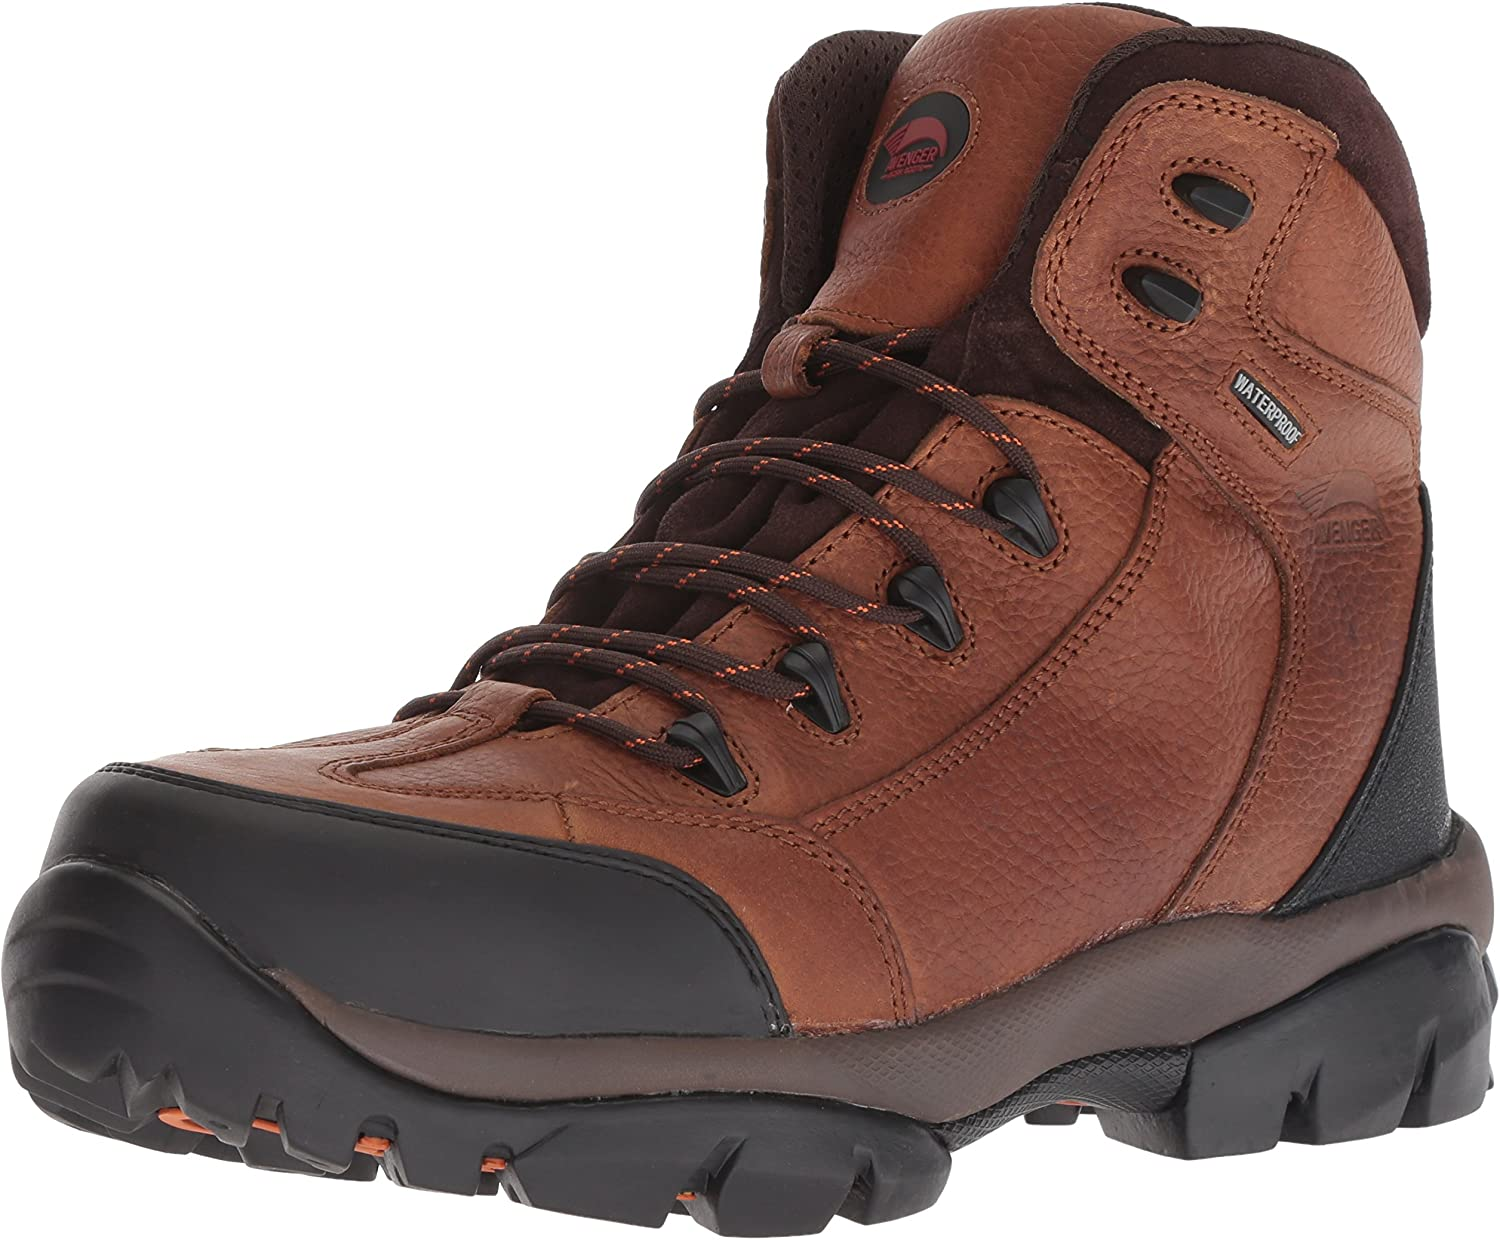 Avenger 7244 Leather Waterproof Comp Toe No Exposed Metal EH Work Boot Brown